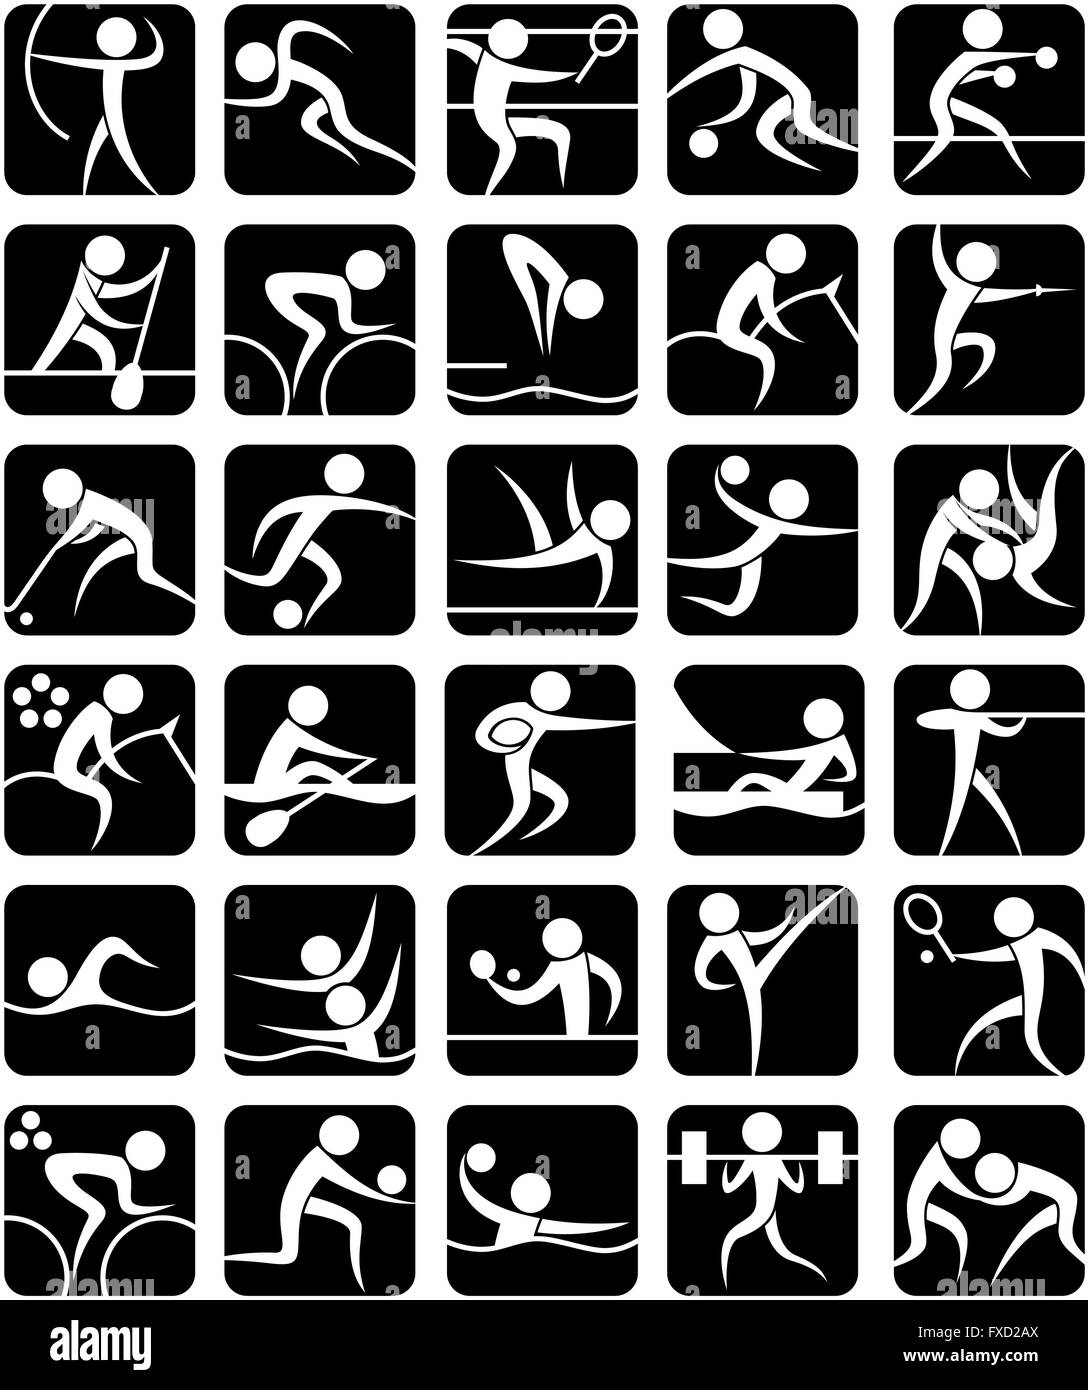 Set of 30 pictograms of Olympic summer sports. - Stock Vector